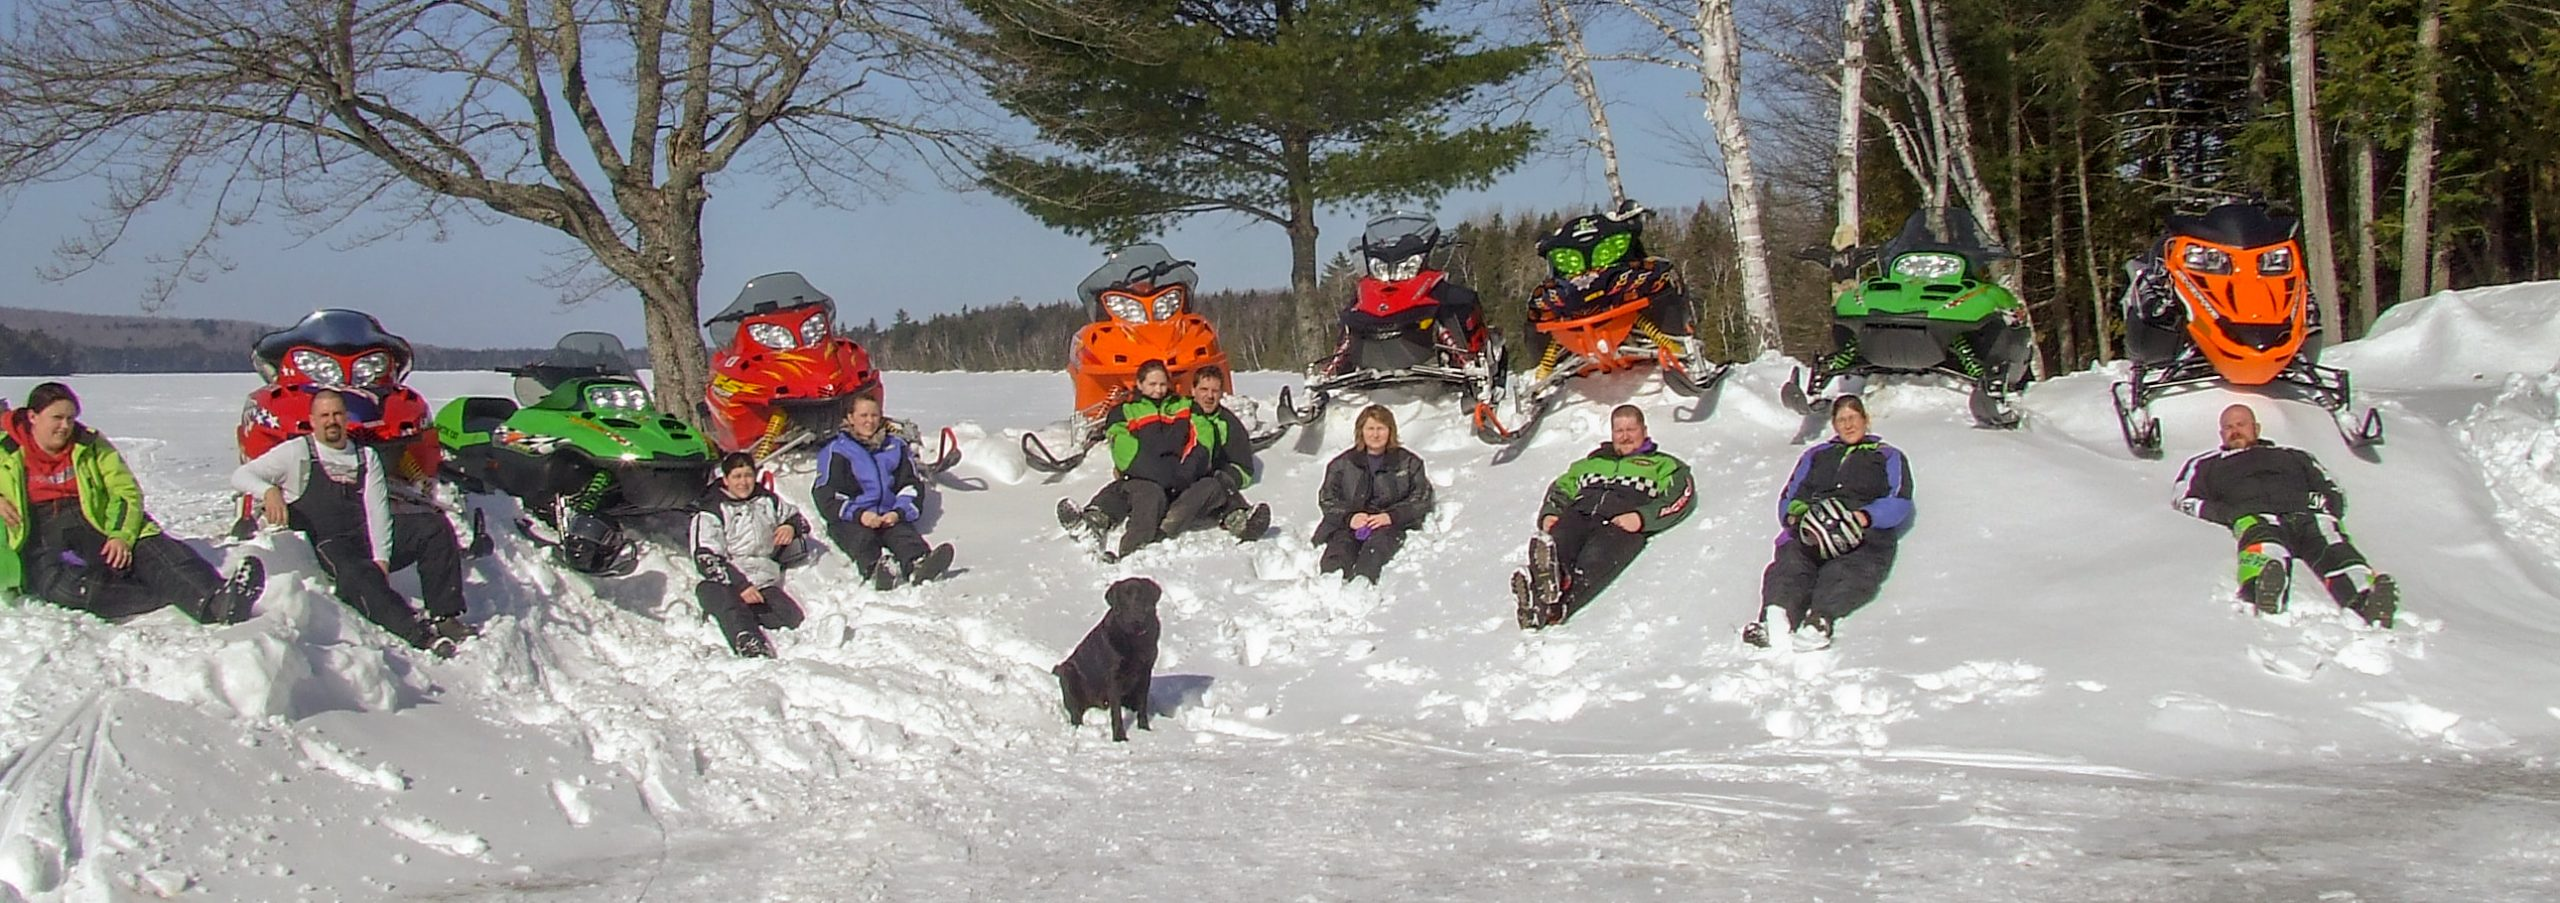 Snowmobiling fun with family and friends